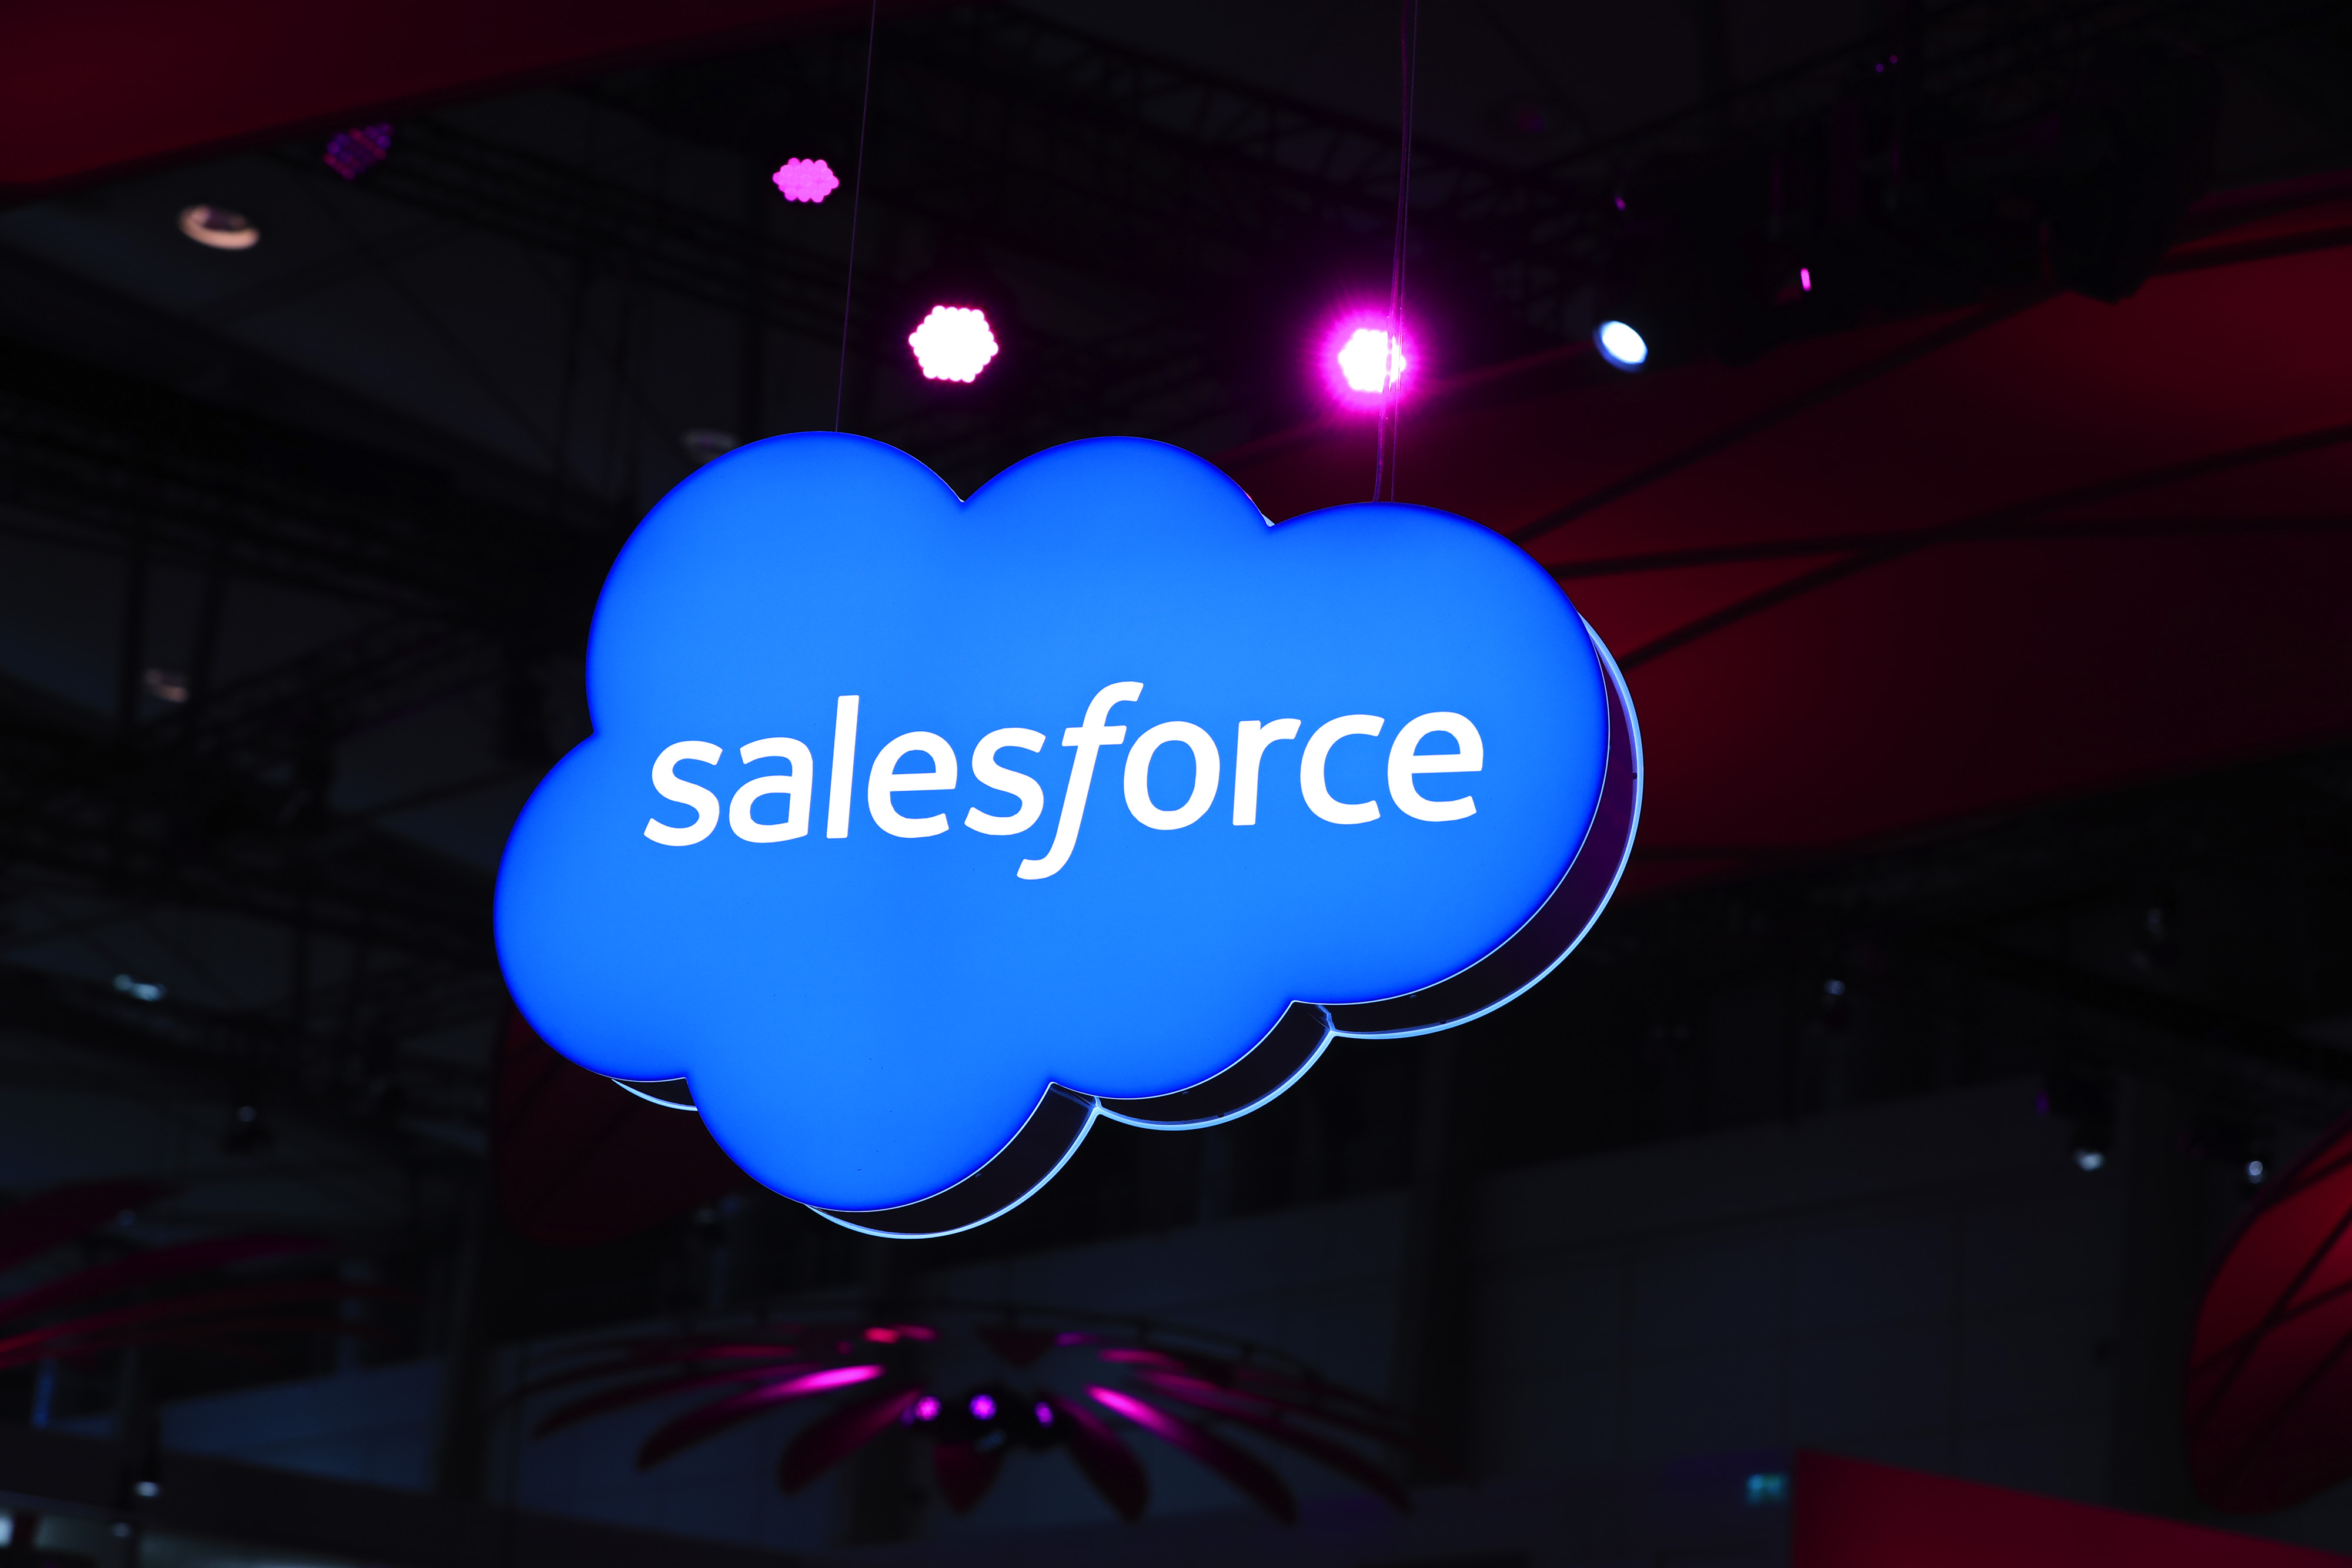 A Salesforce.Com Inc. logo sits on an illuminated icloud lightbox hanging from the ceiling at the CeBIT 2017 tech fair in Hannover, Germany.